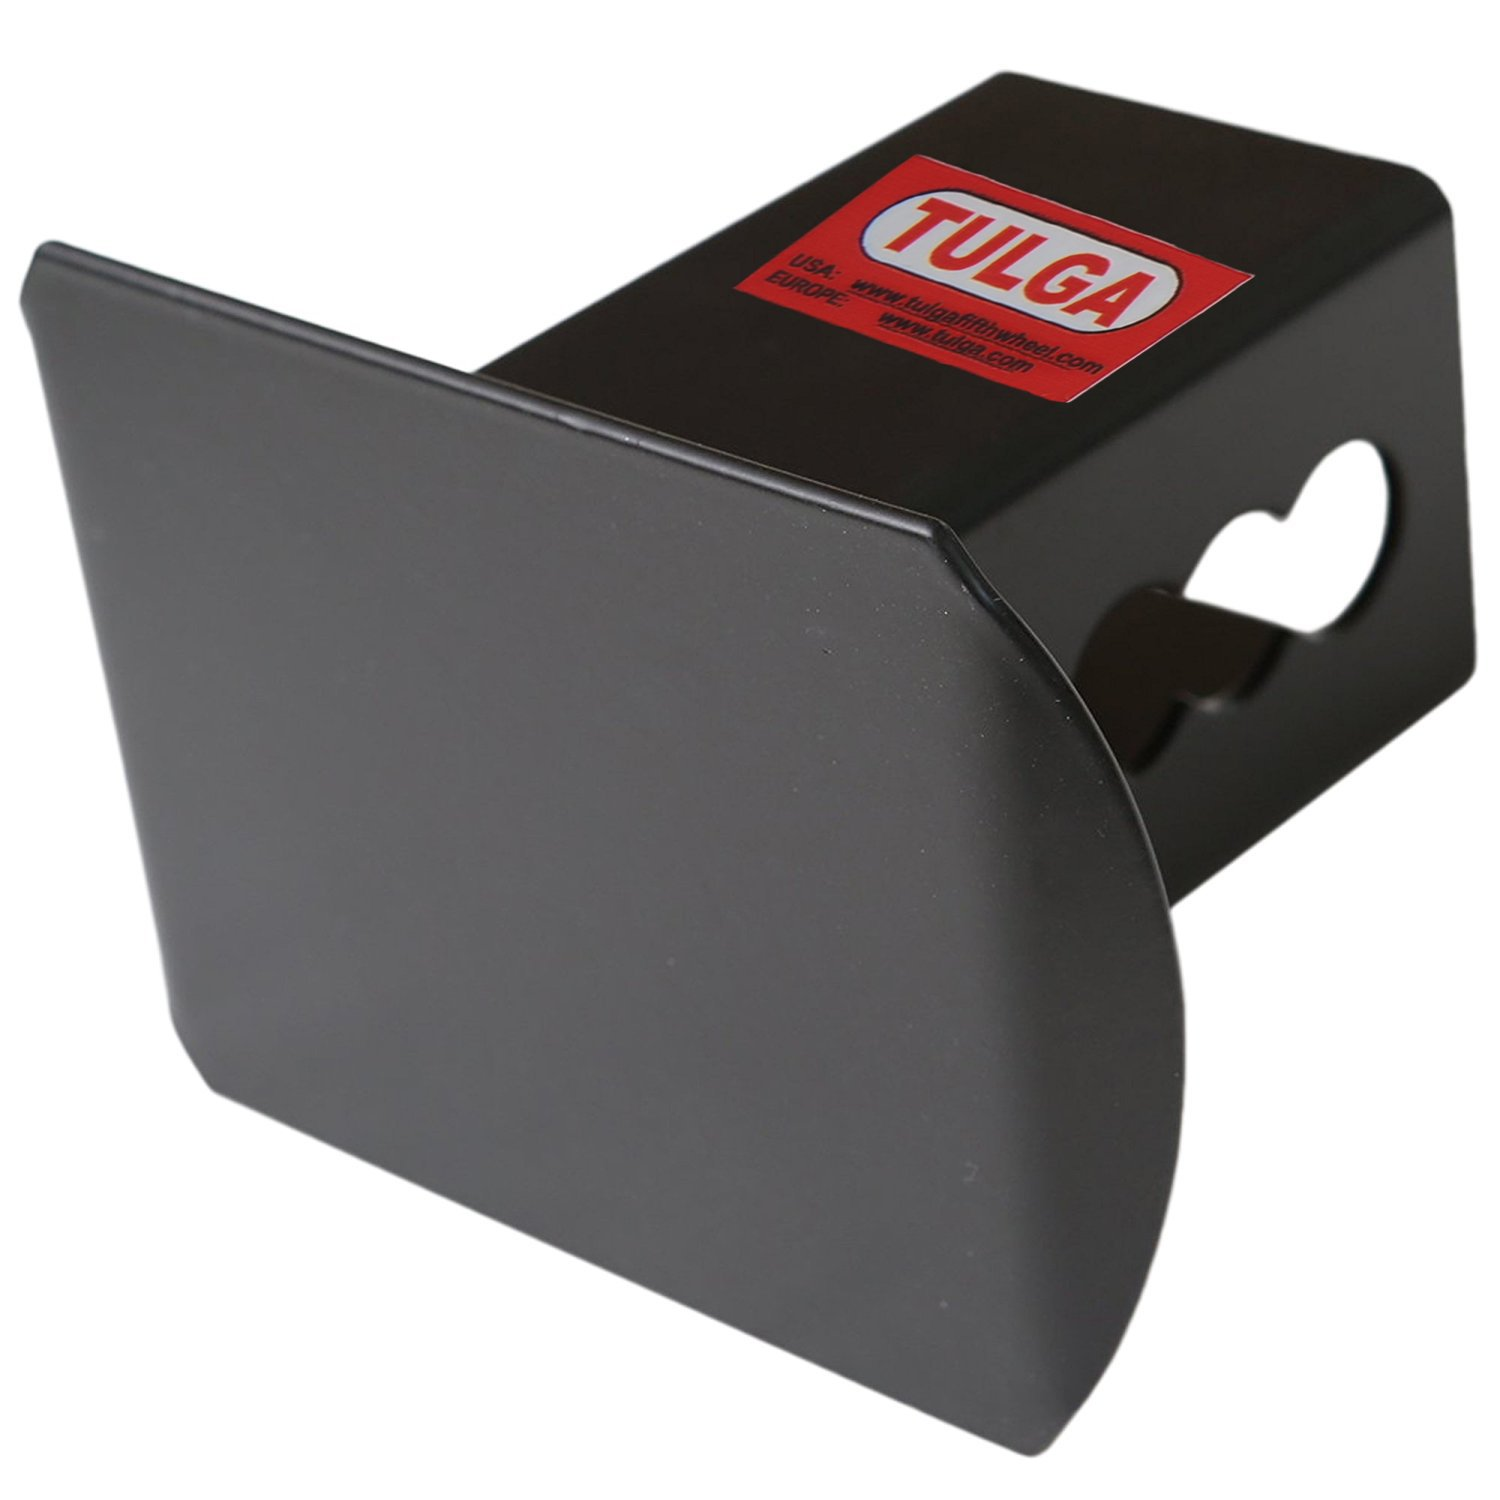 Tulga Fifth Wheel Co Steel Hitch Cover Black Matte Blank Tube Metal Trailer Towing Hitch Cover for 2' Receivers Tulga Fifth Wheel Co.